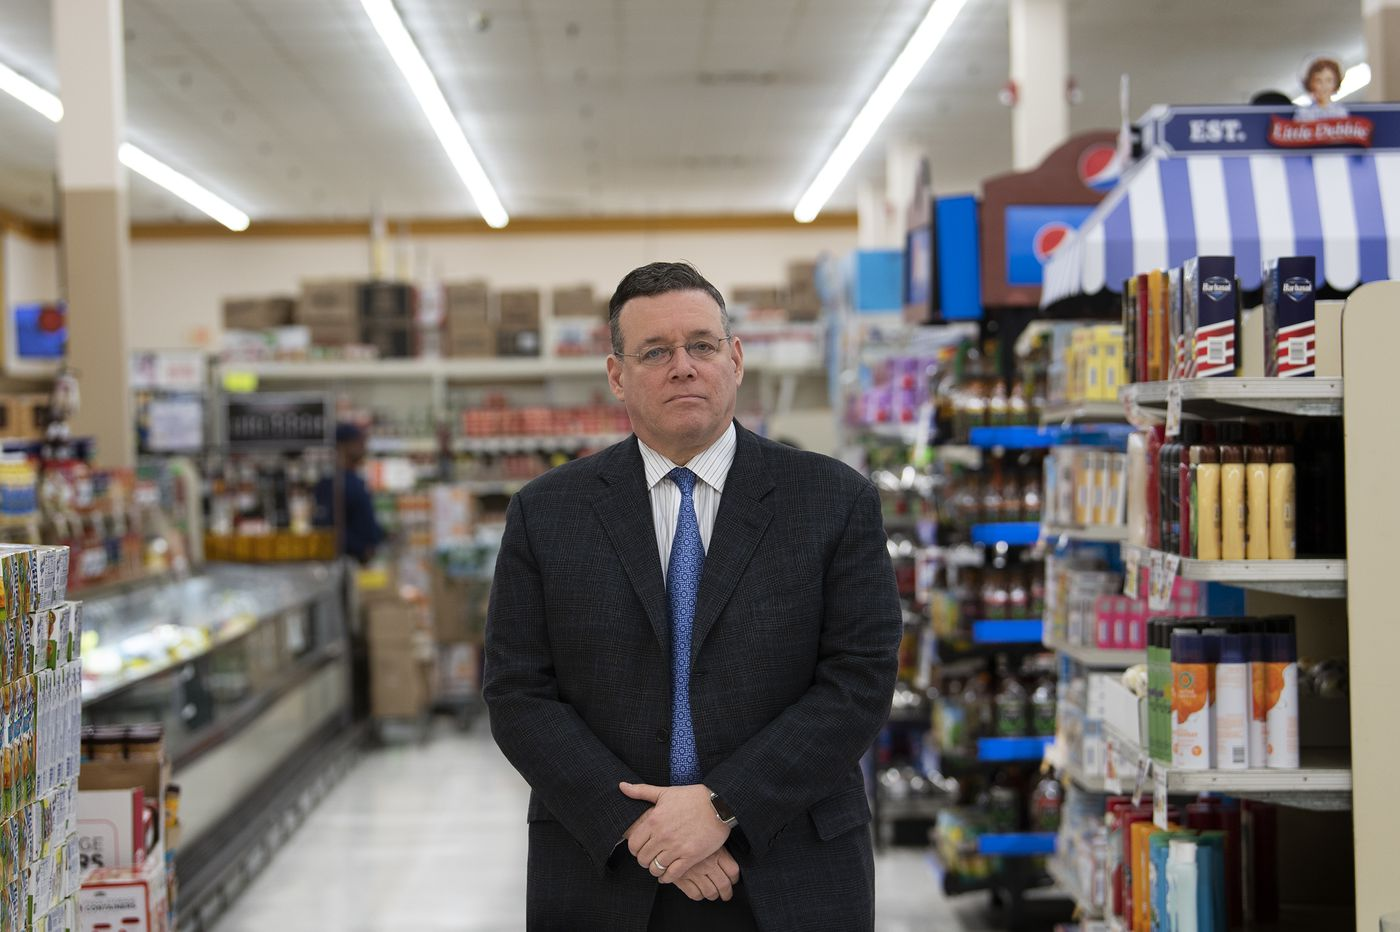 City's attack on ShopRite owner fails to fizz | Stu Bykofsky